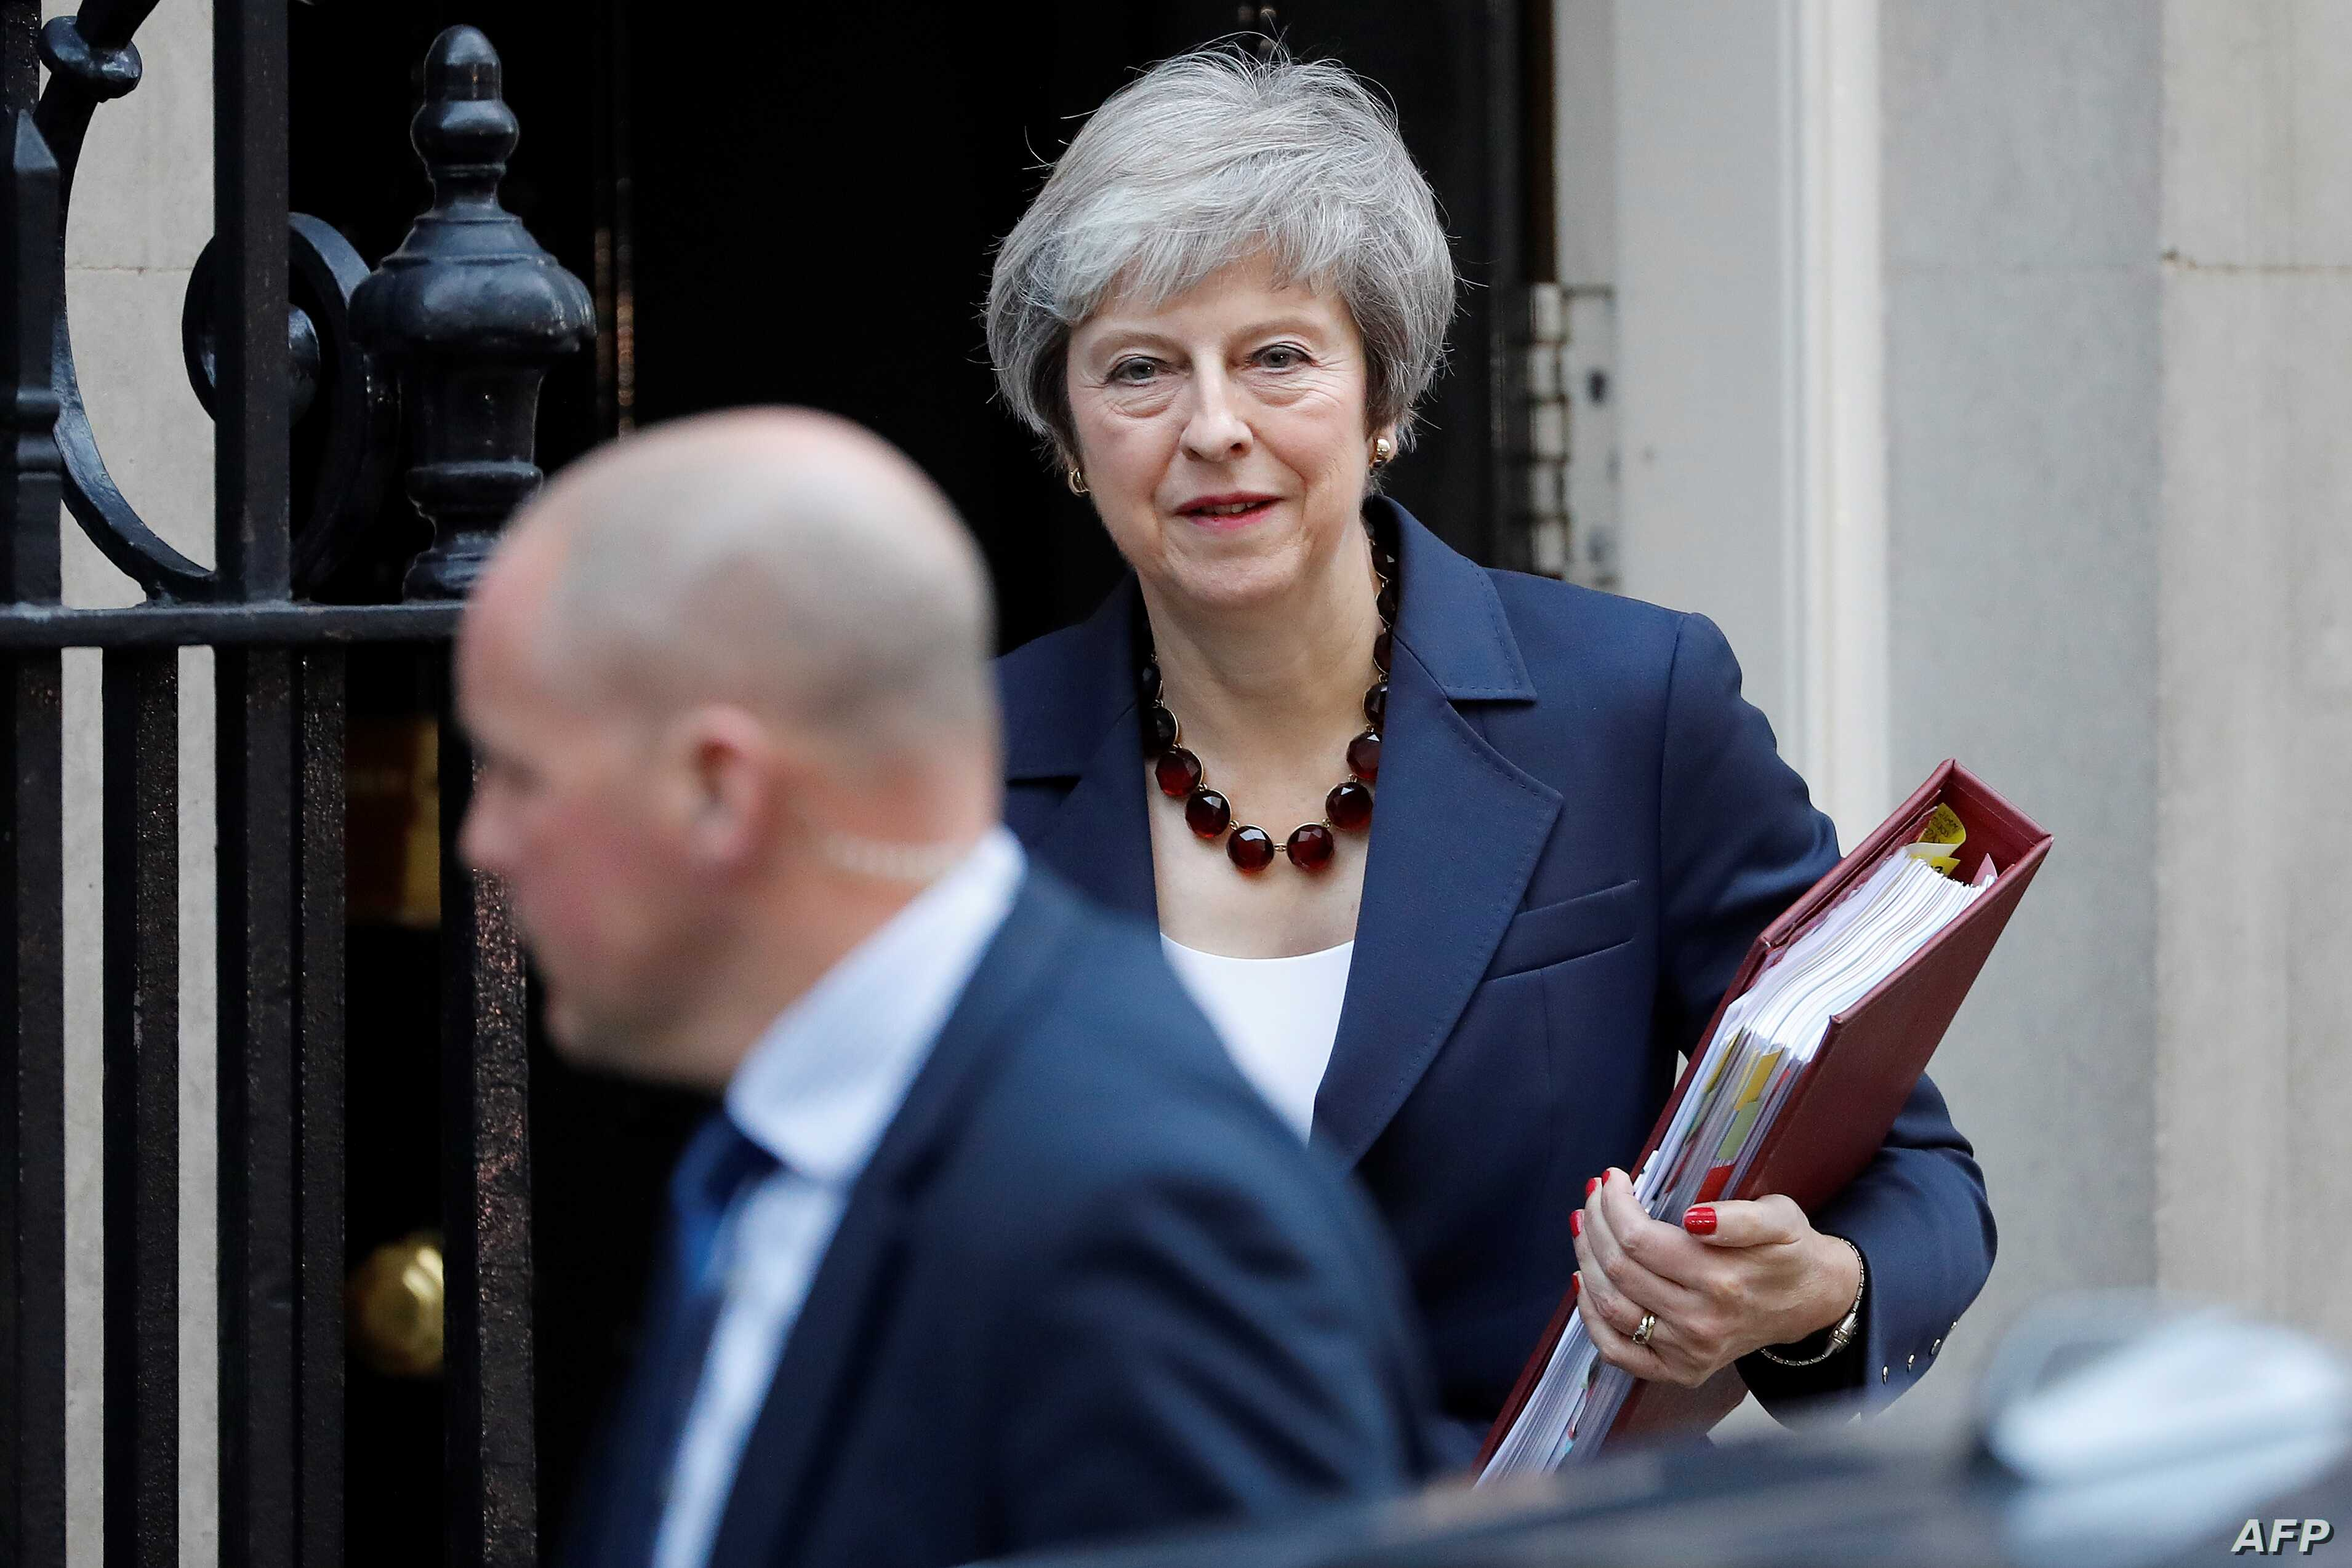 Britain's Prime Minister Theresa May leaves 10 Downing Street in London on November 14, 2018, to attend the weekly Prime Minister's Questions at the Houses of Parliament.